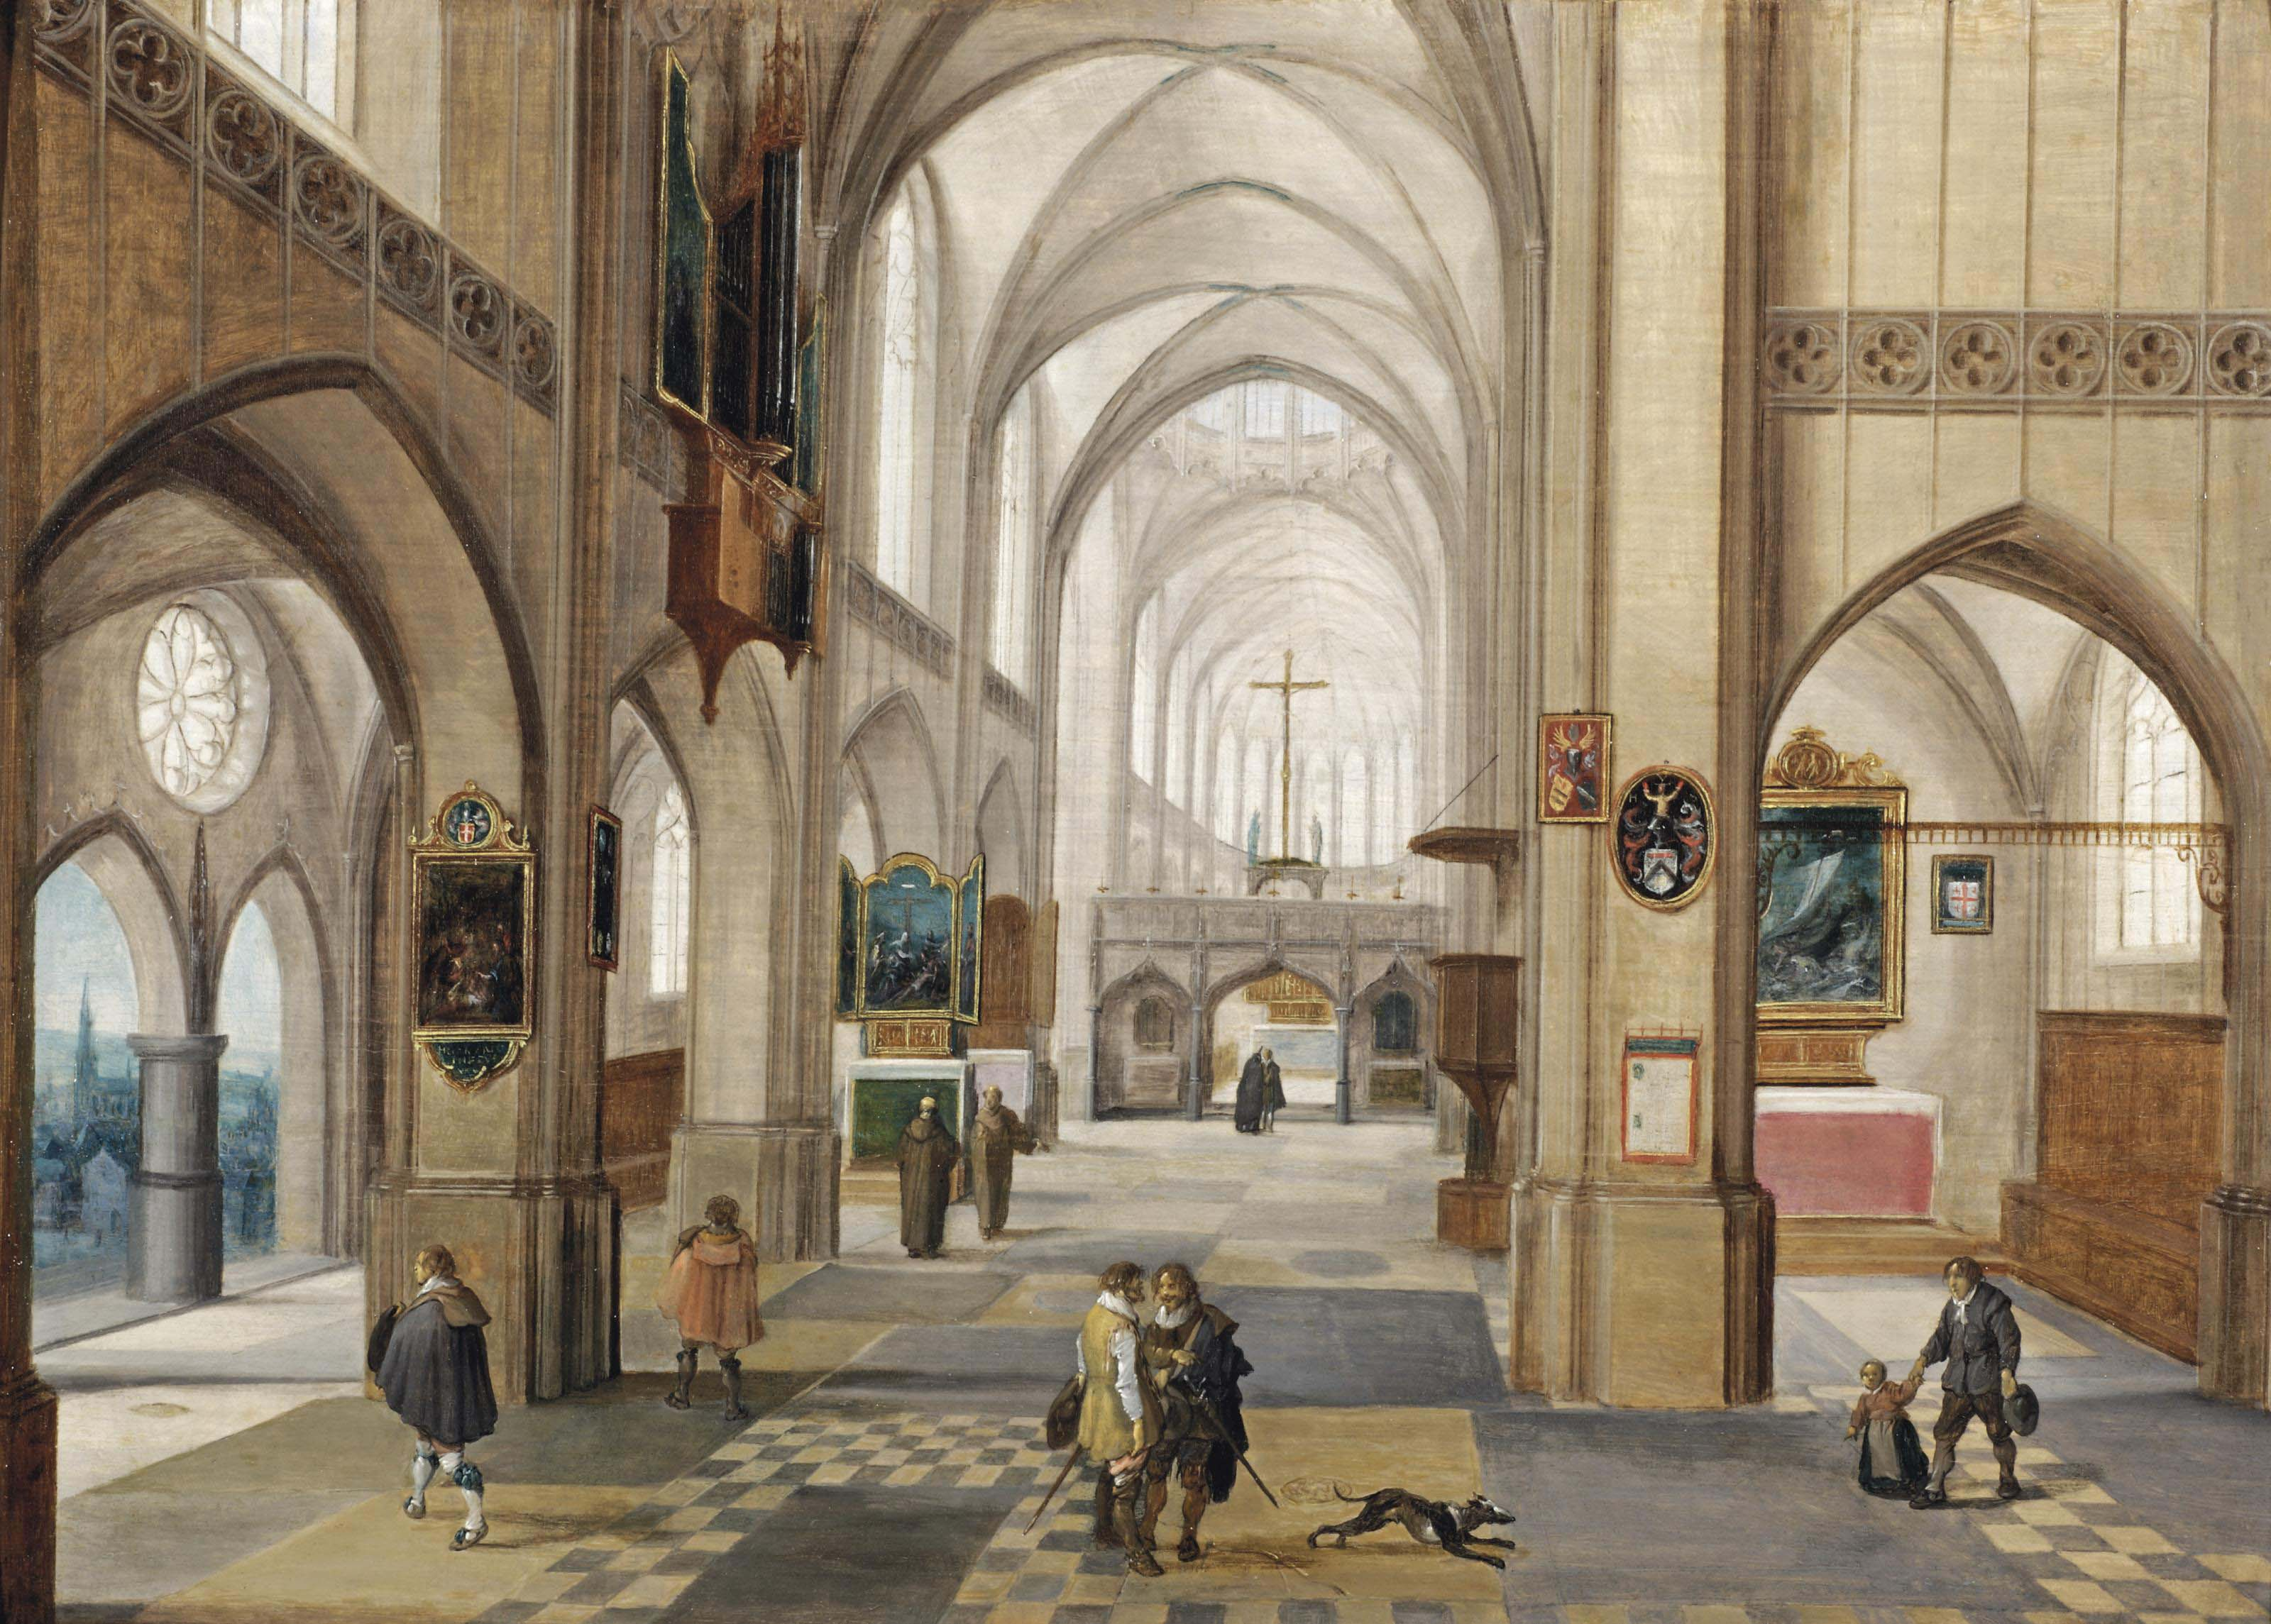 The interior of a Gothic church with gentlemen conversing